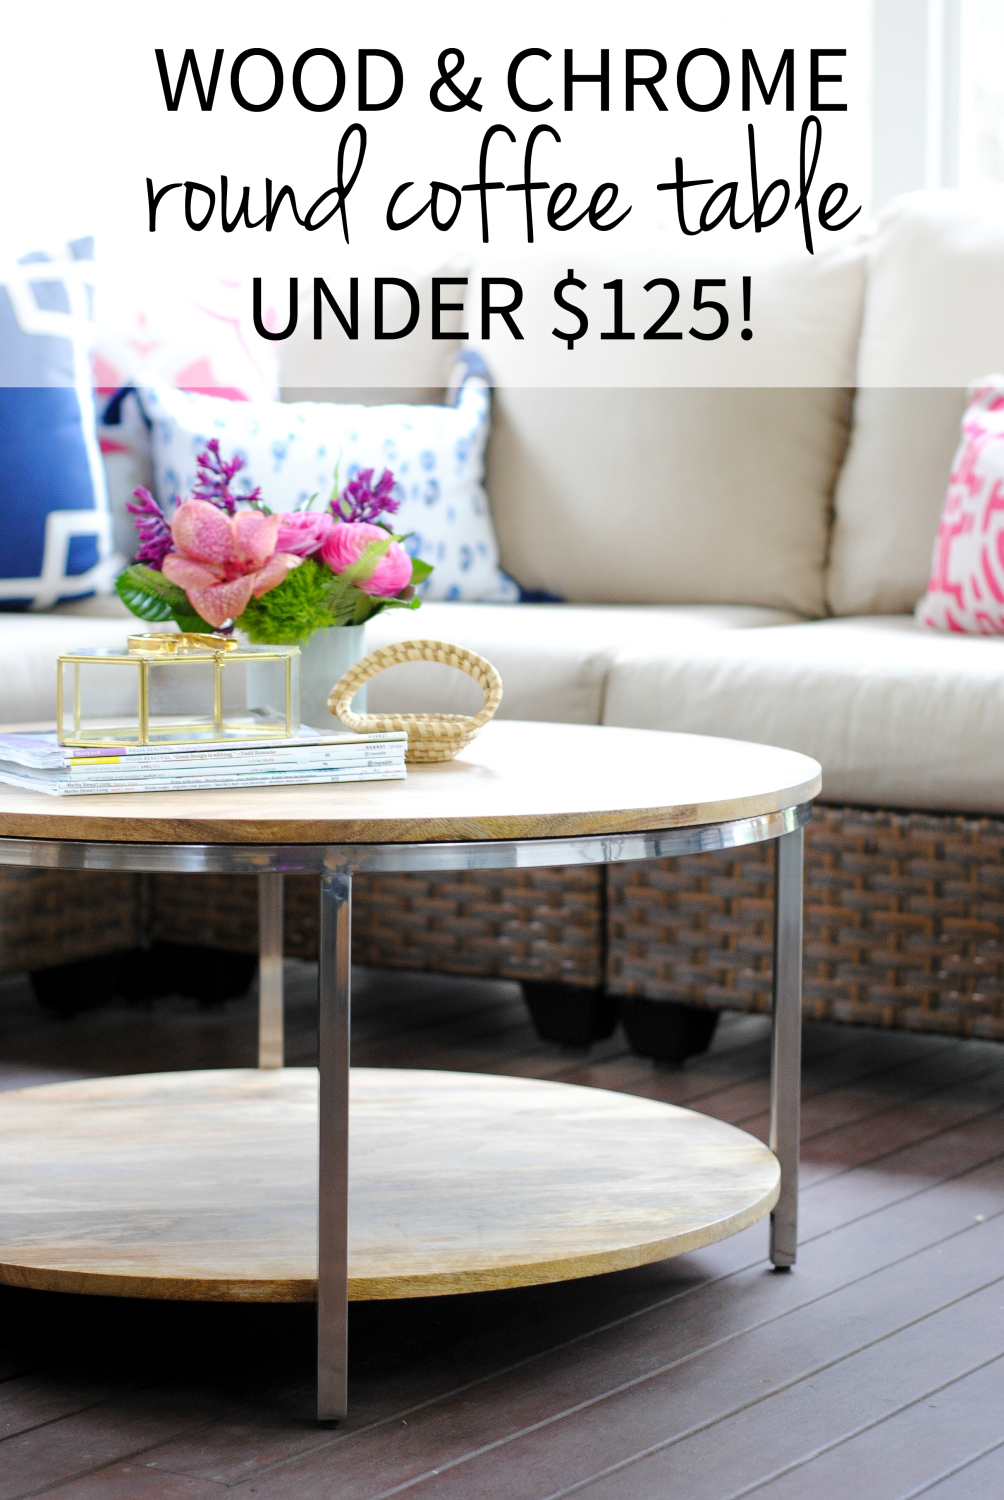 Classic wood and chrome round coffee table on a budget - amazing deal for a beautiful table!